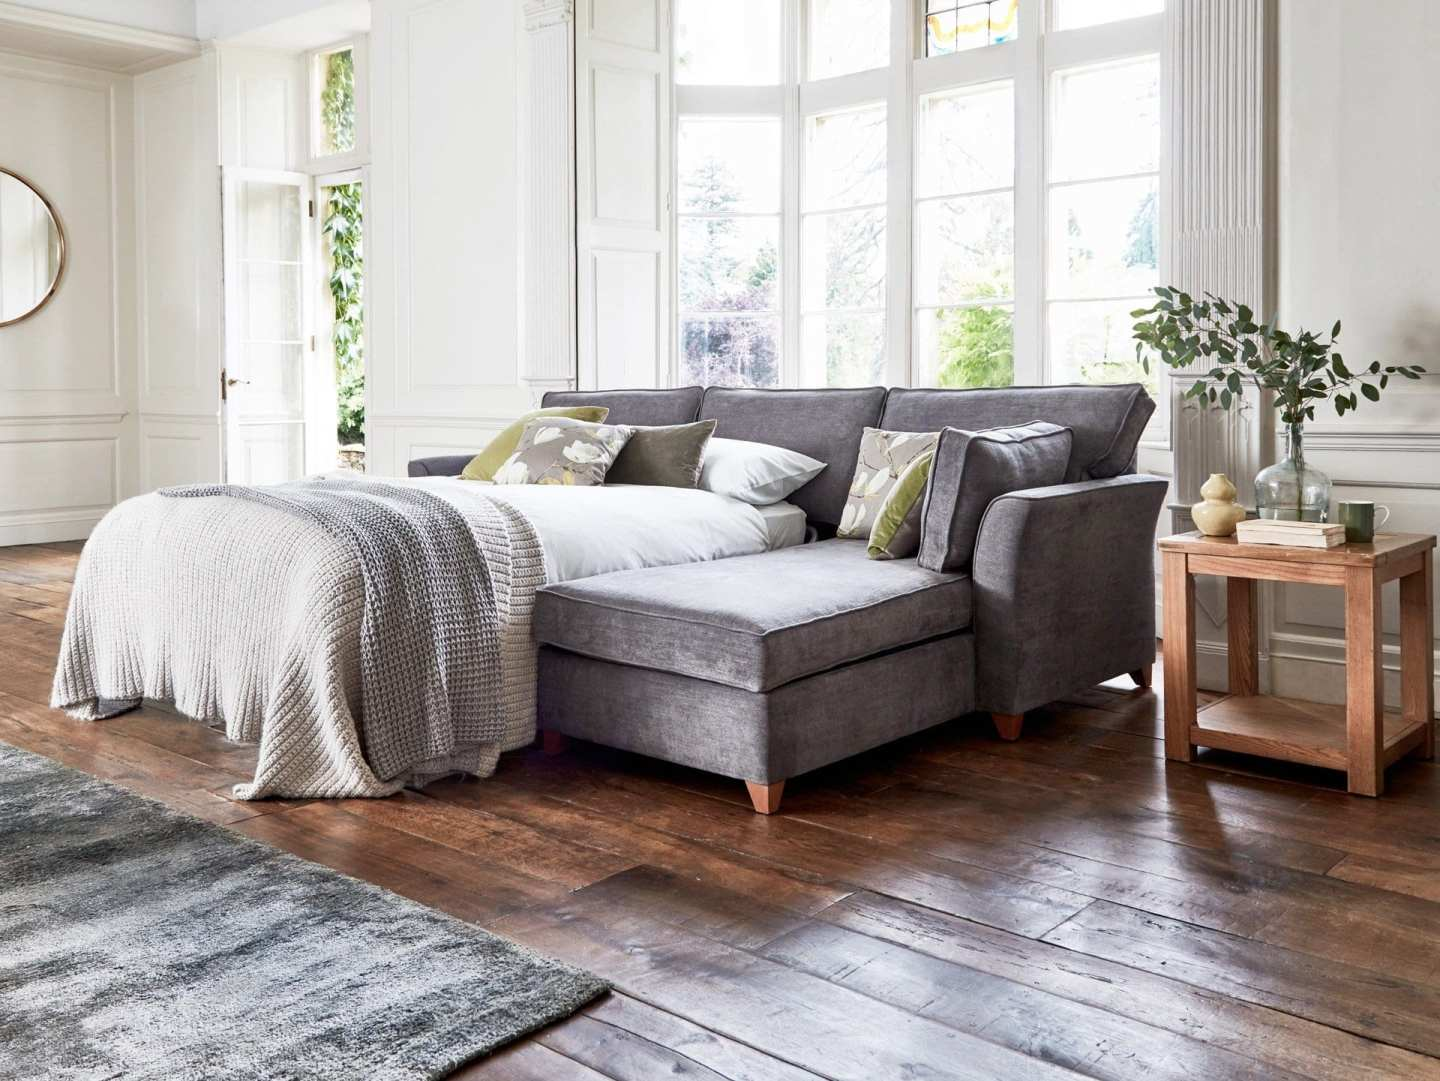 3 Amazing Sleep Solutions For Small Spaces Love Chic Living